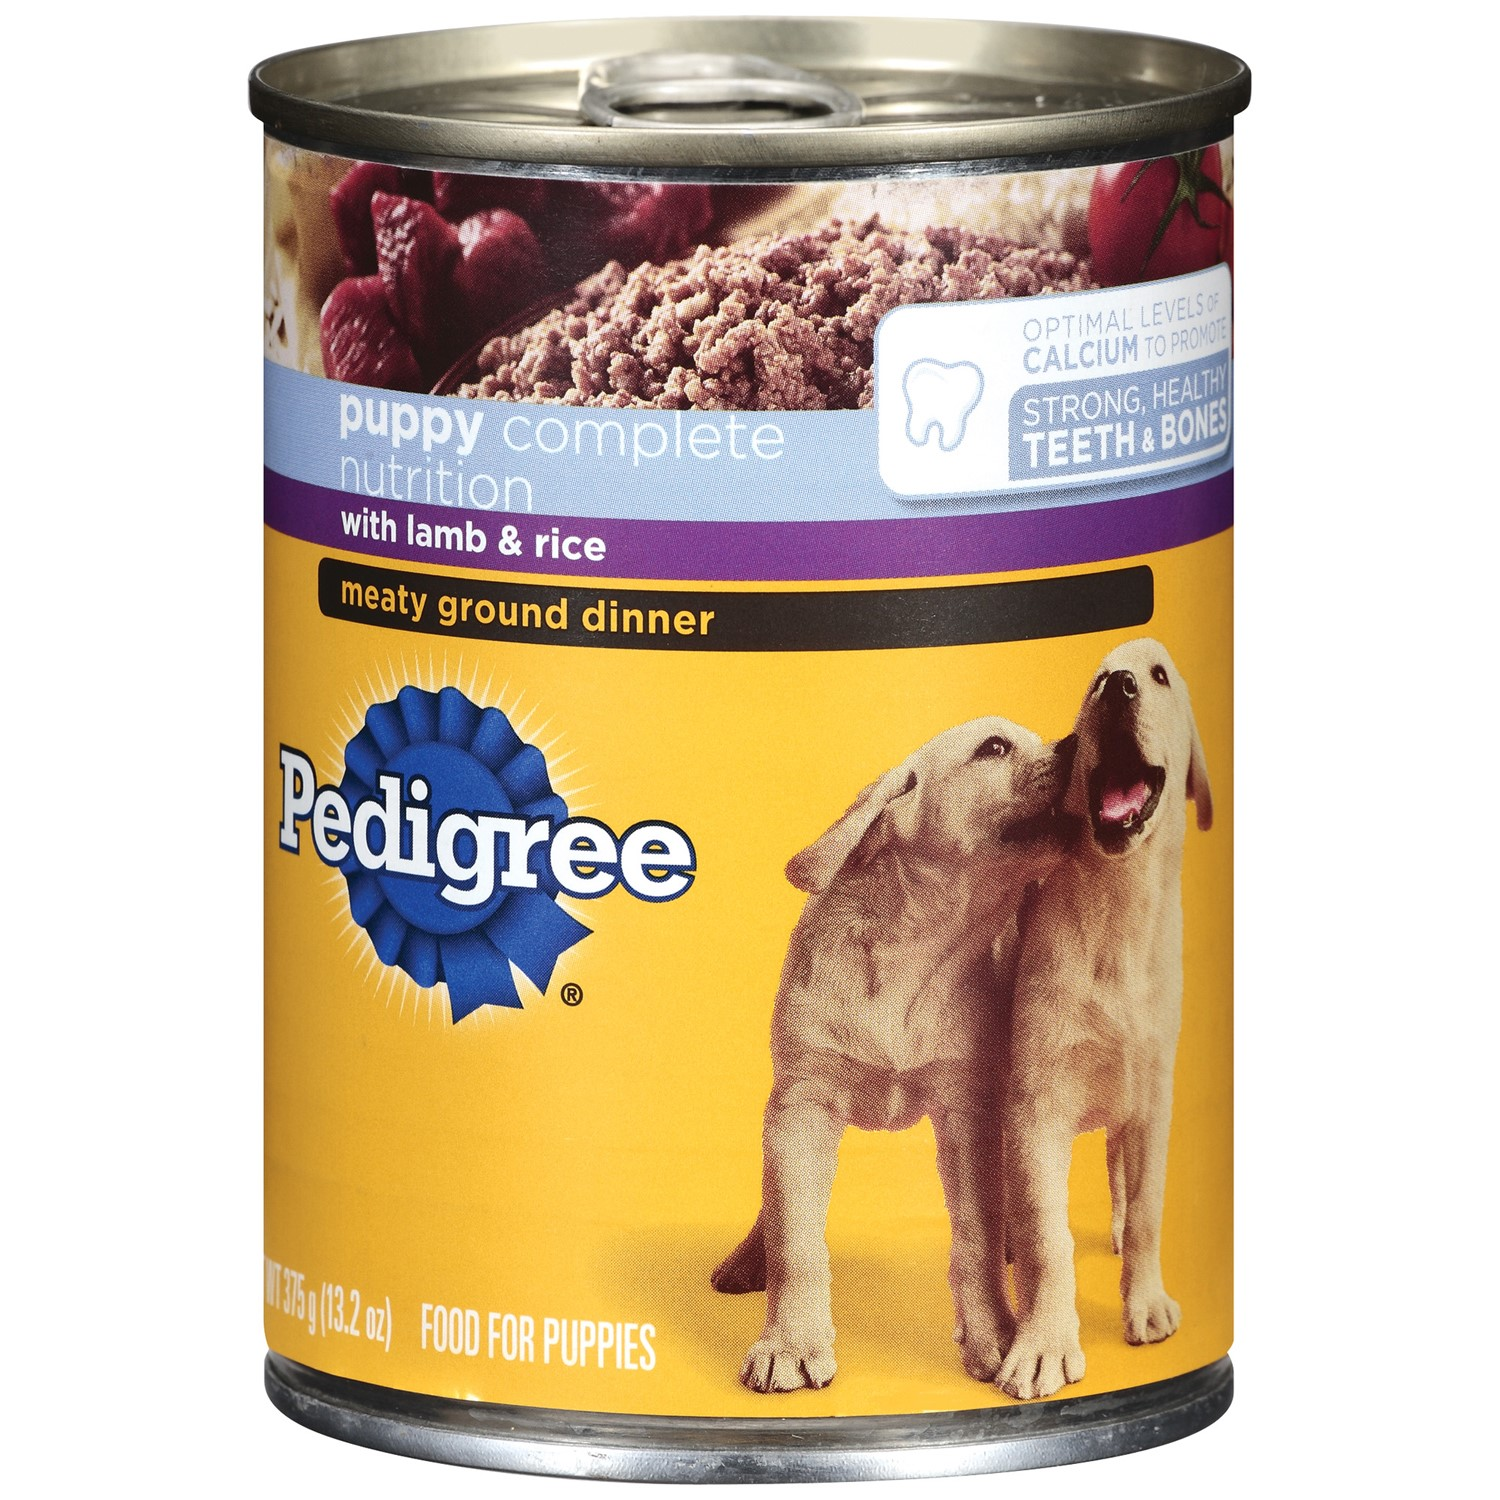 Pedigree Complete Nutrition Meaty Ground Lamb & Rice Dinner Puppy Wet Dog Food, 13.2 oz